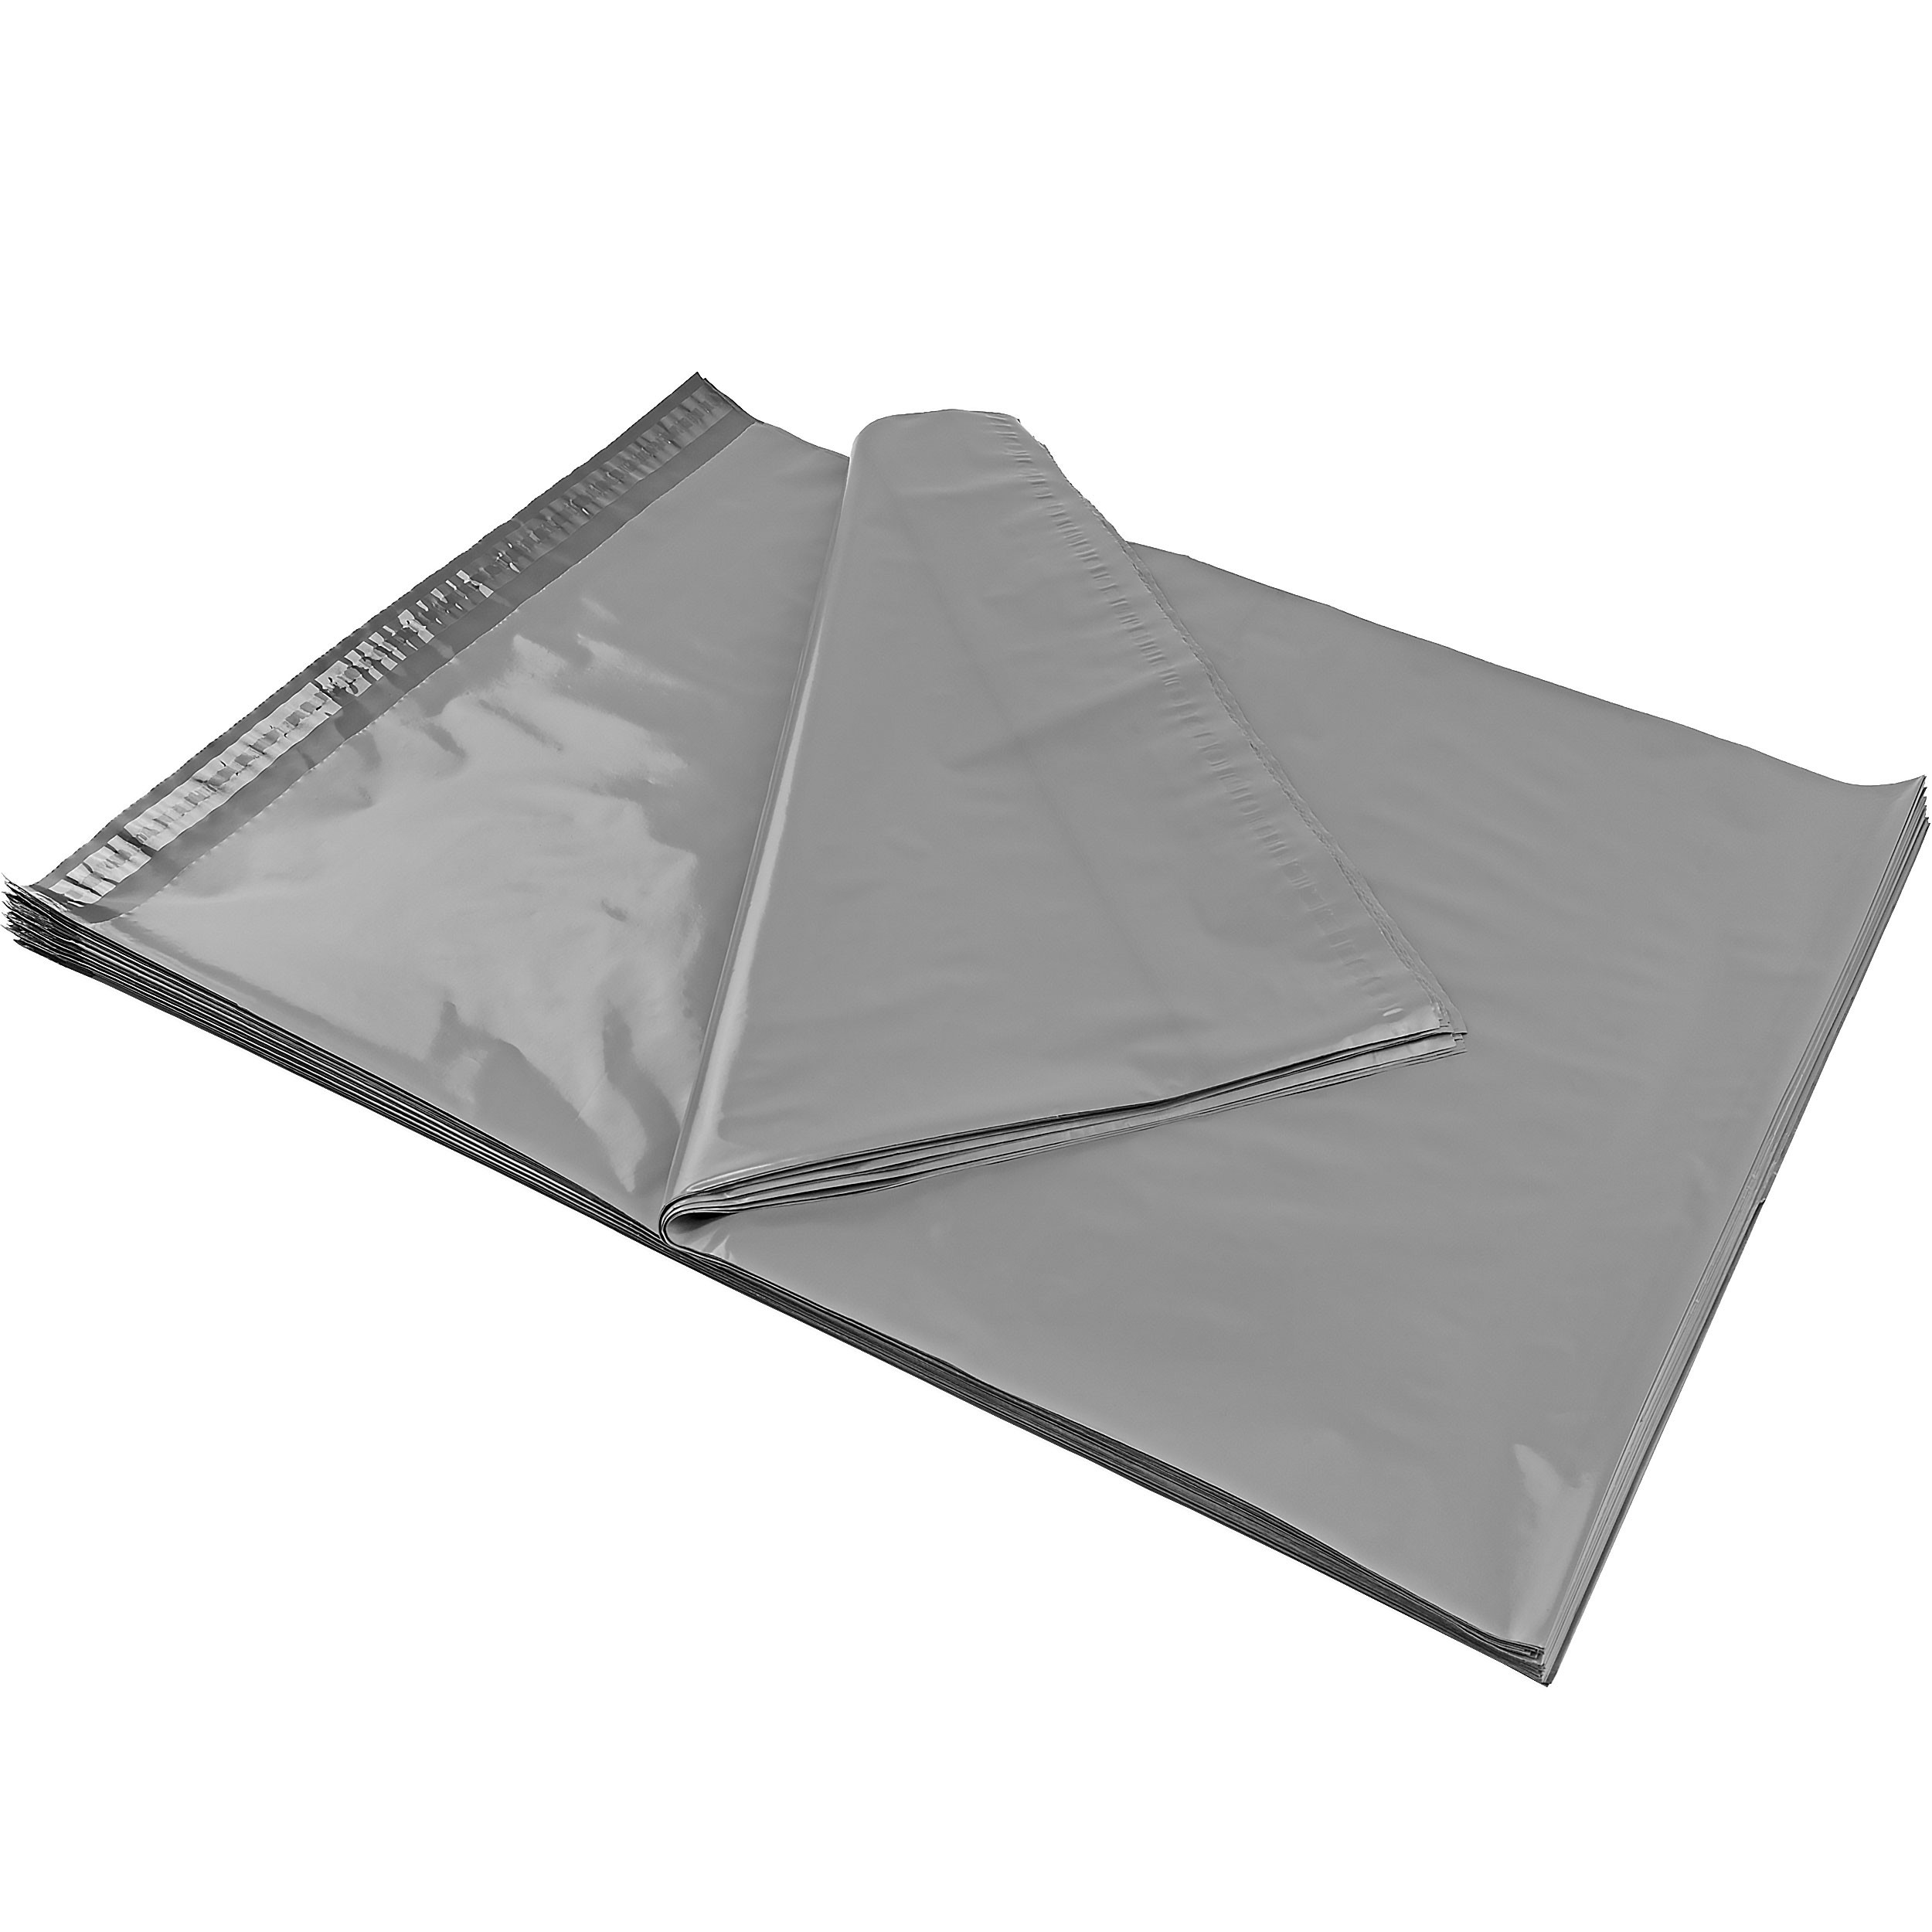 "19x24"" Poly Mailers Envelopes Self Sealing Bags - 2.4 Mil, Set of 50"